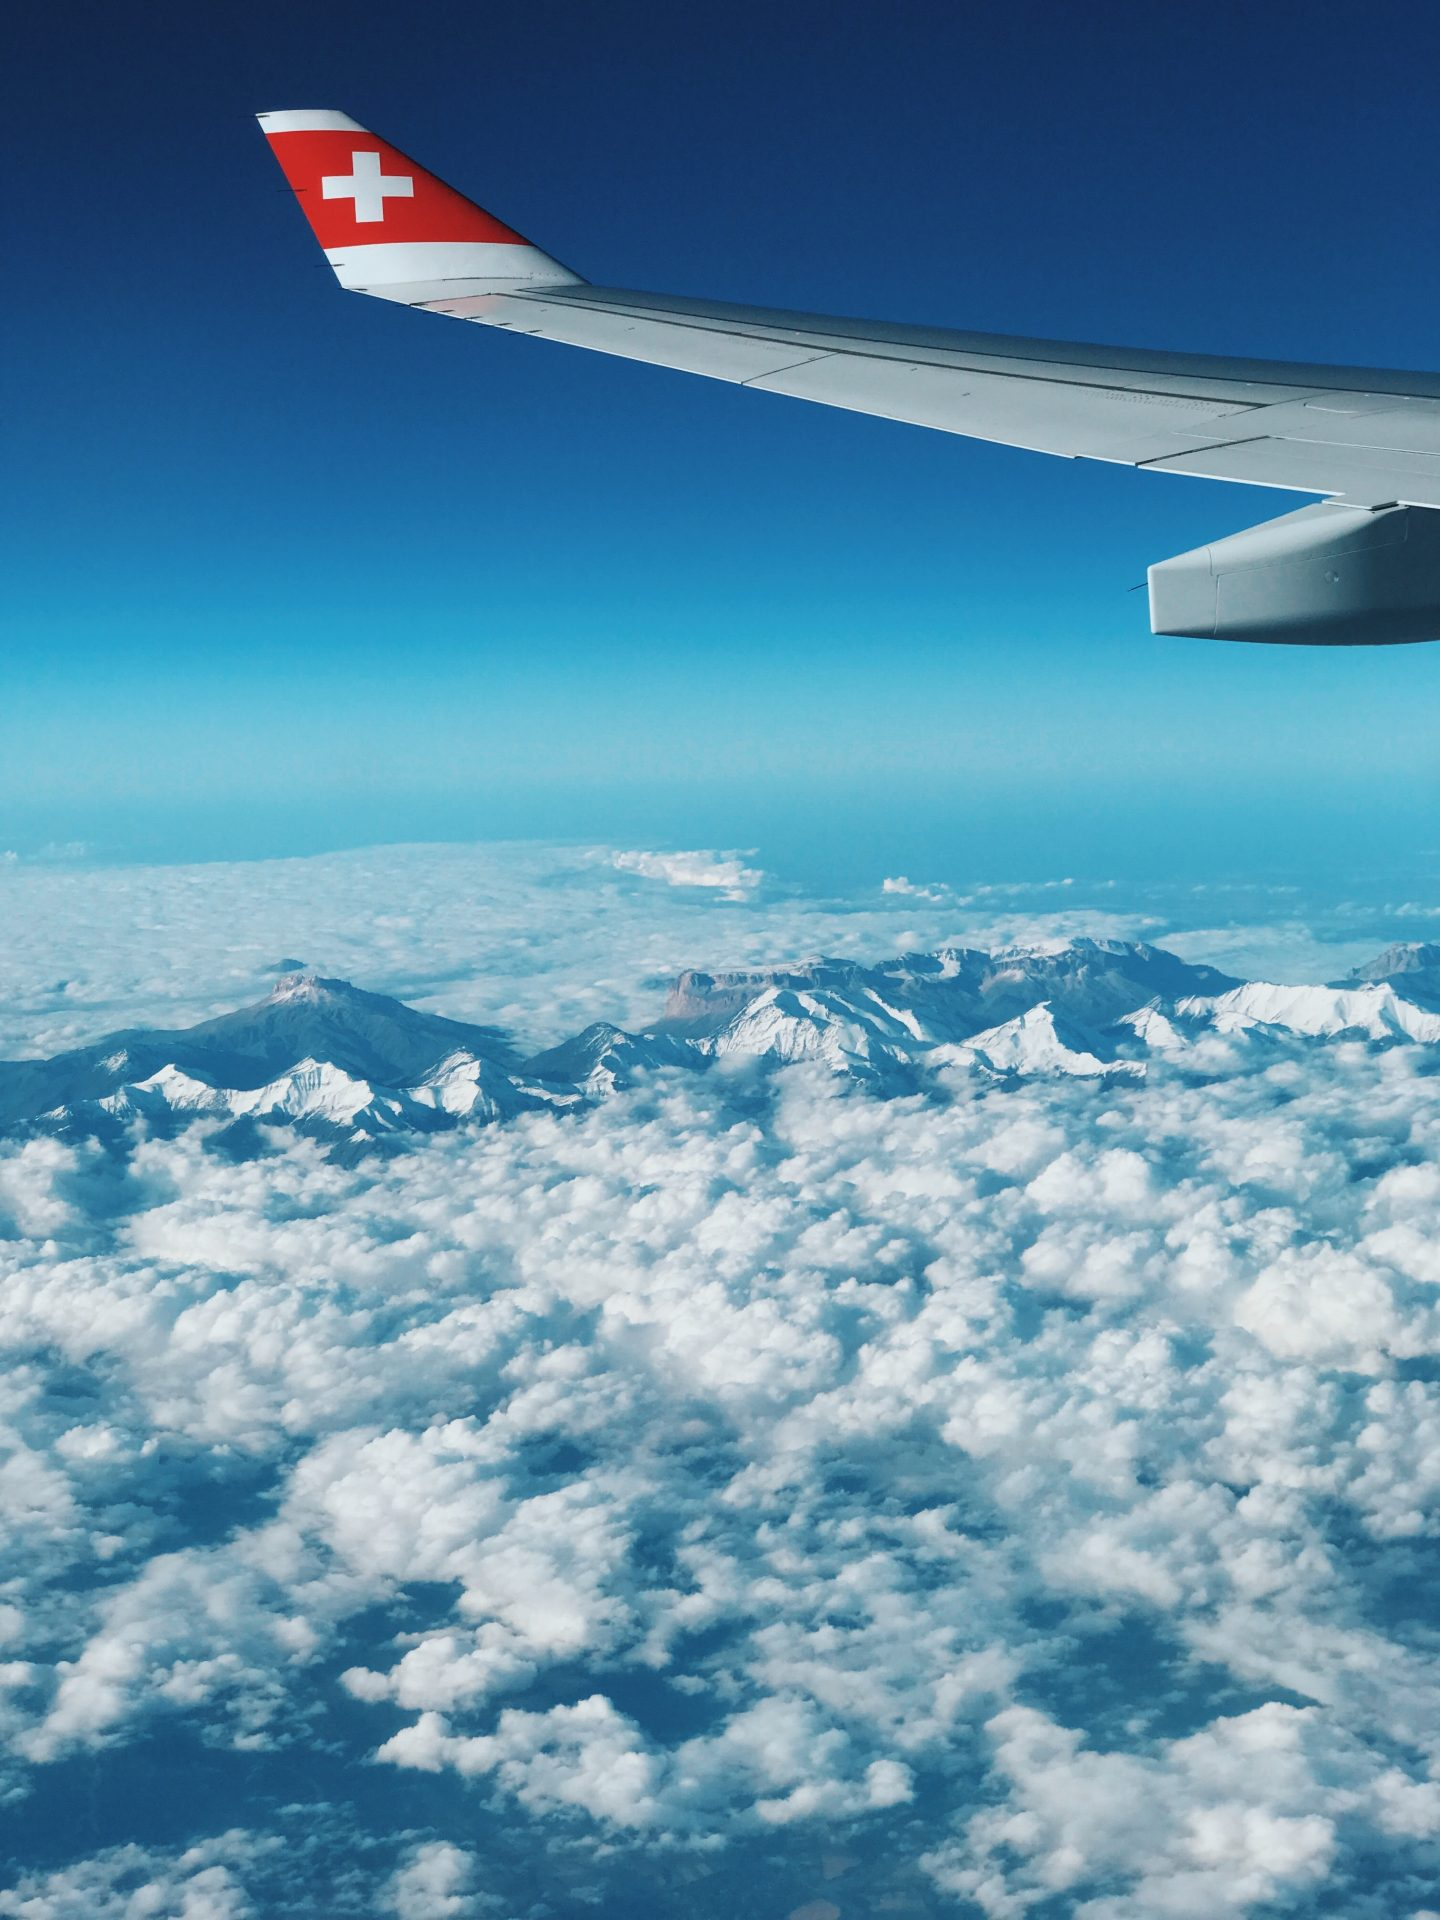 view over clouds and mountain from the mountain, airplane view, tips to get upgraded